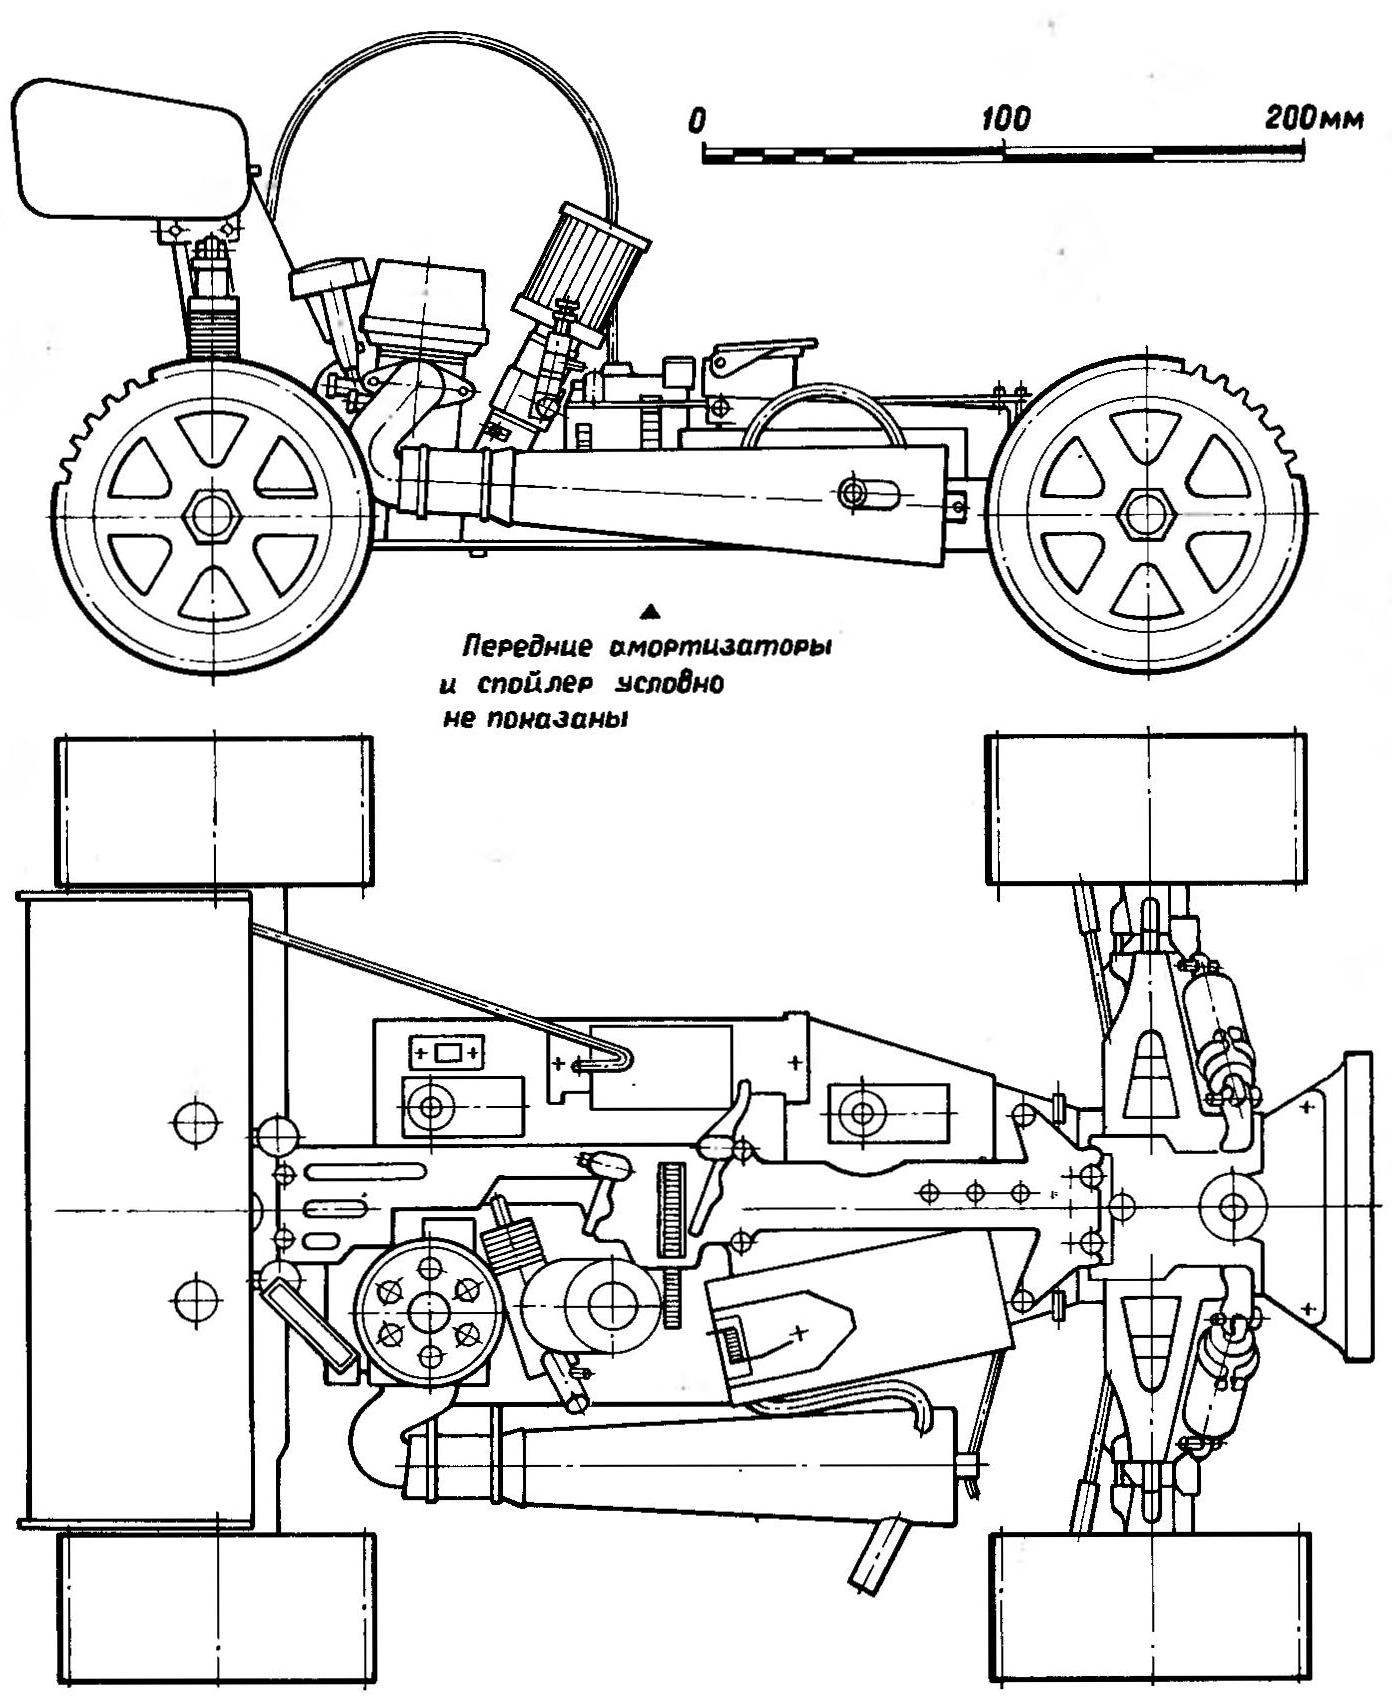 R and p. 2. Design model-class Buggy-8D domestic production